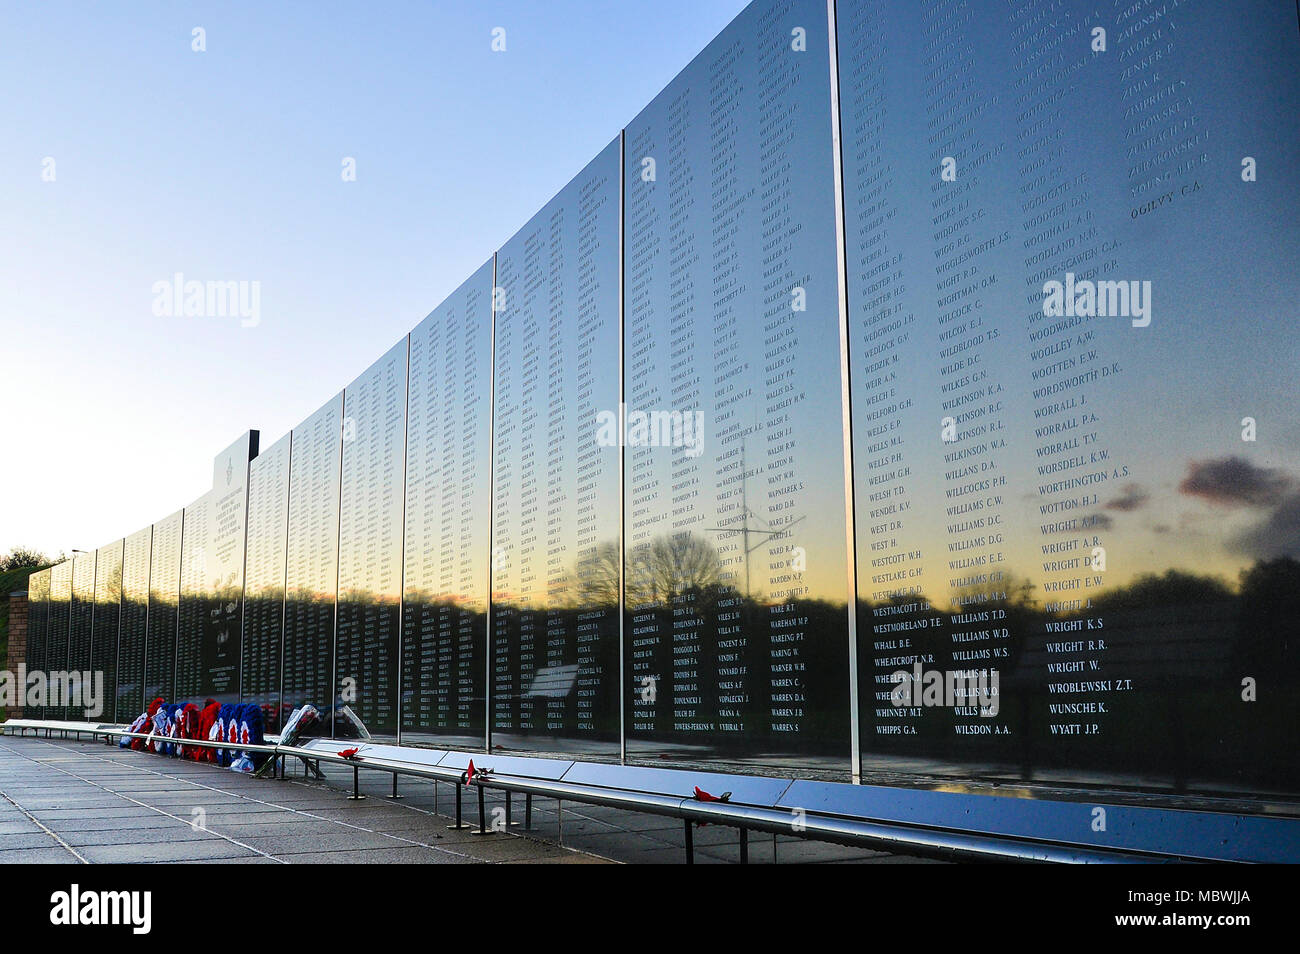 Battle of Britain Memorial, Capel-le-Ferne, Christopher Foxley-Norris Memorial Wall at sunset. Kent. Fight pilot's names. Royal Air Force wreaths - Stock Image